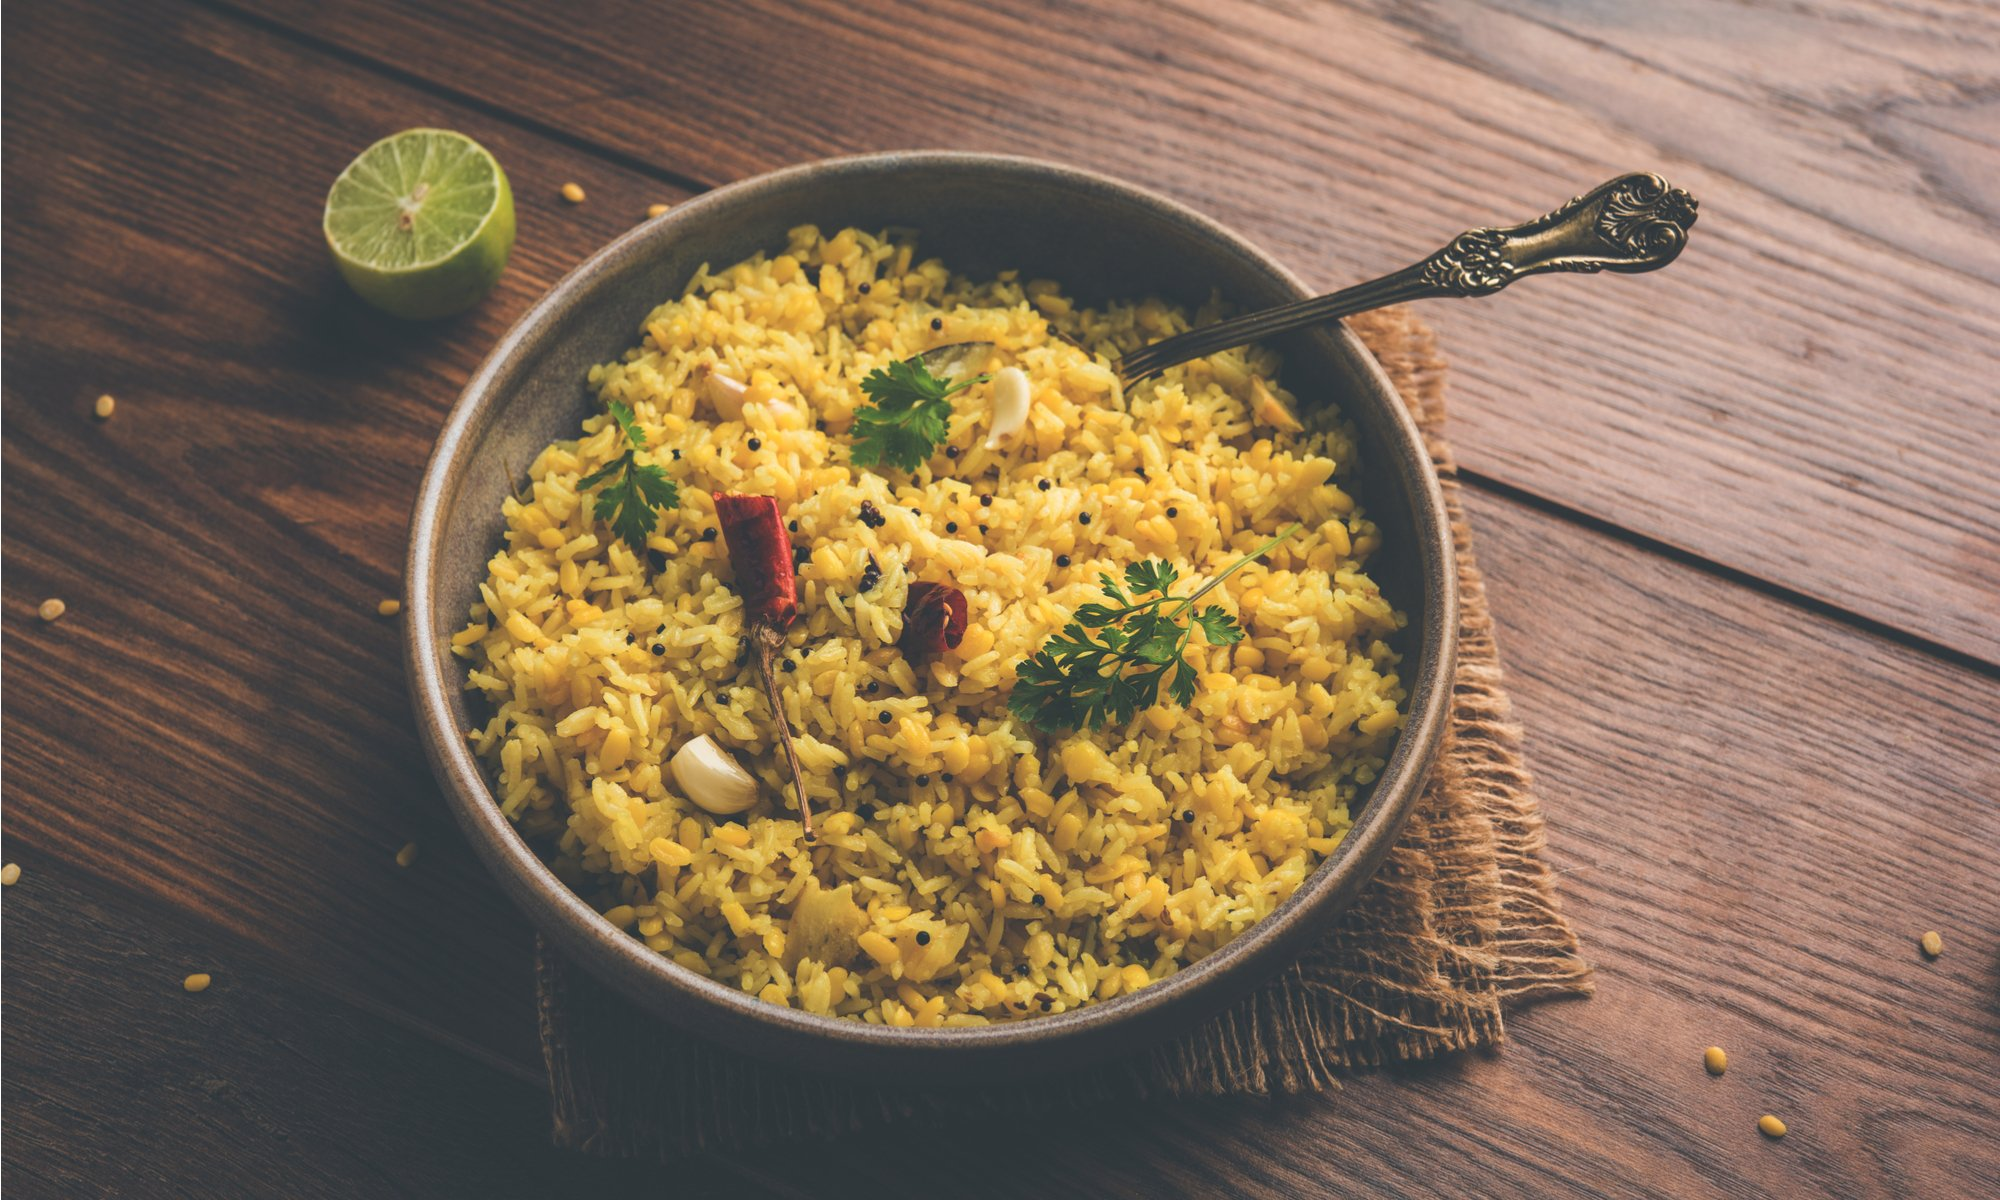 KITCHARI: THE WARMING, COMFORTING, IDEAL WINTER MEAL